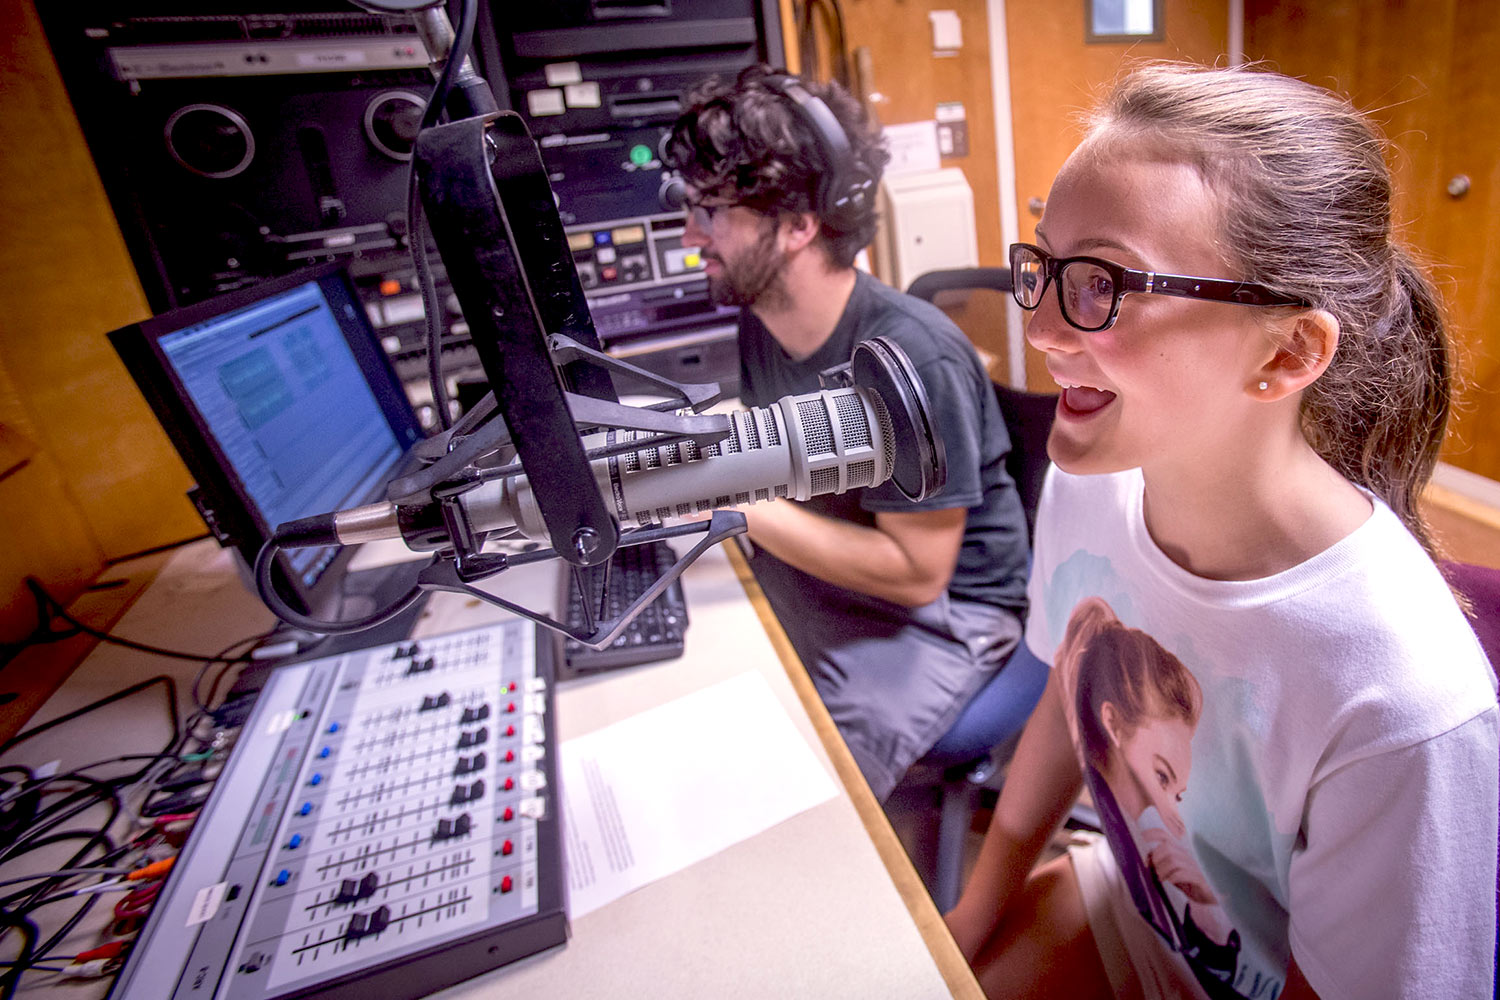 The camp gave students the opportunity to produce and record their own radio shows.